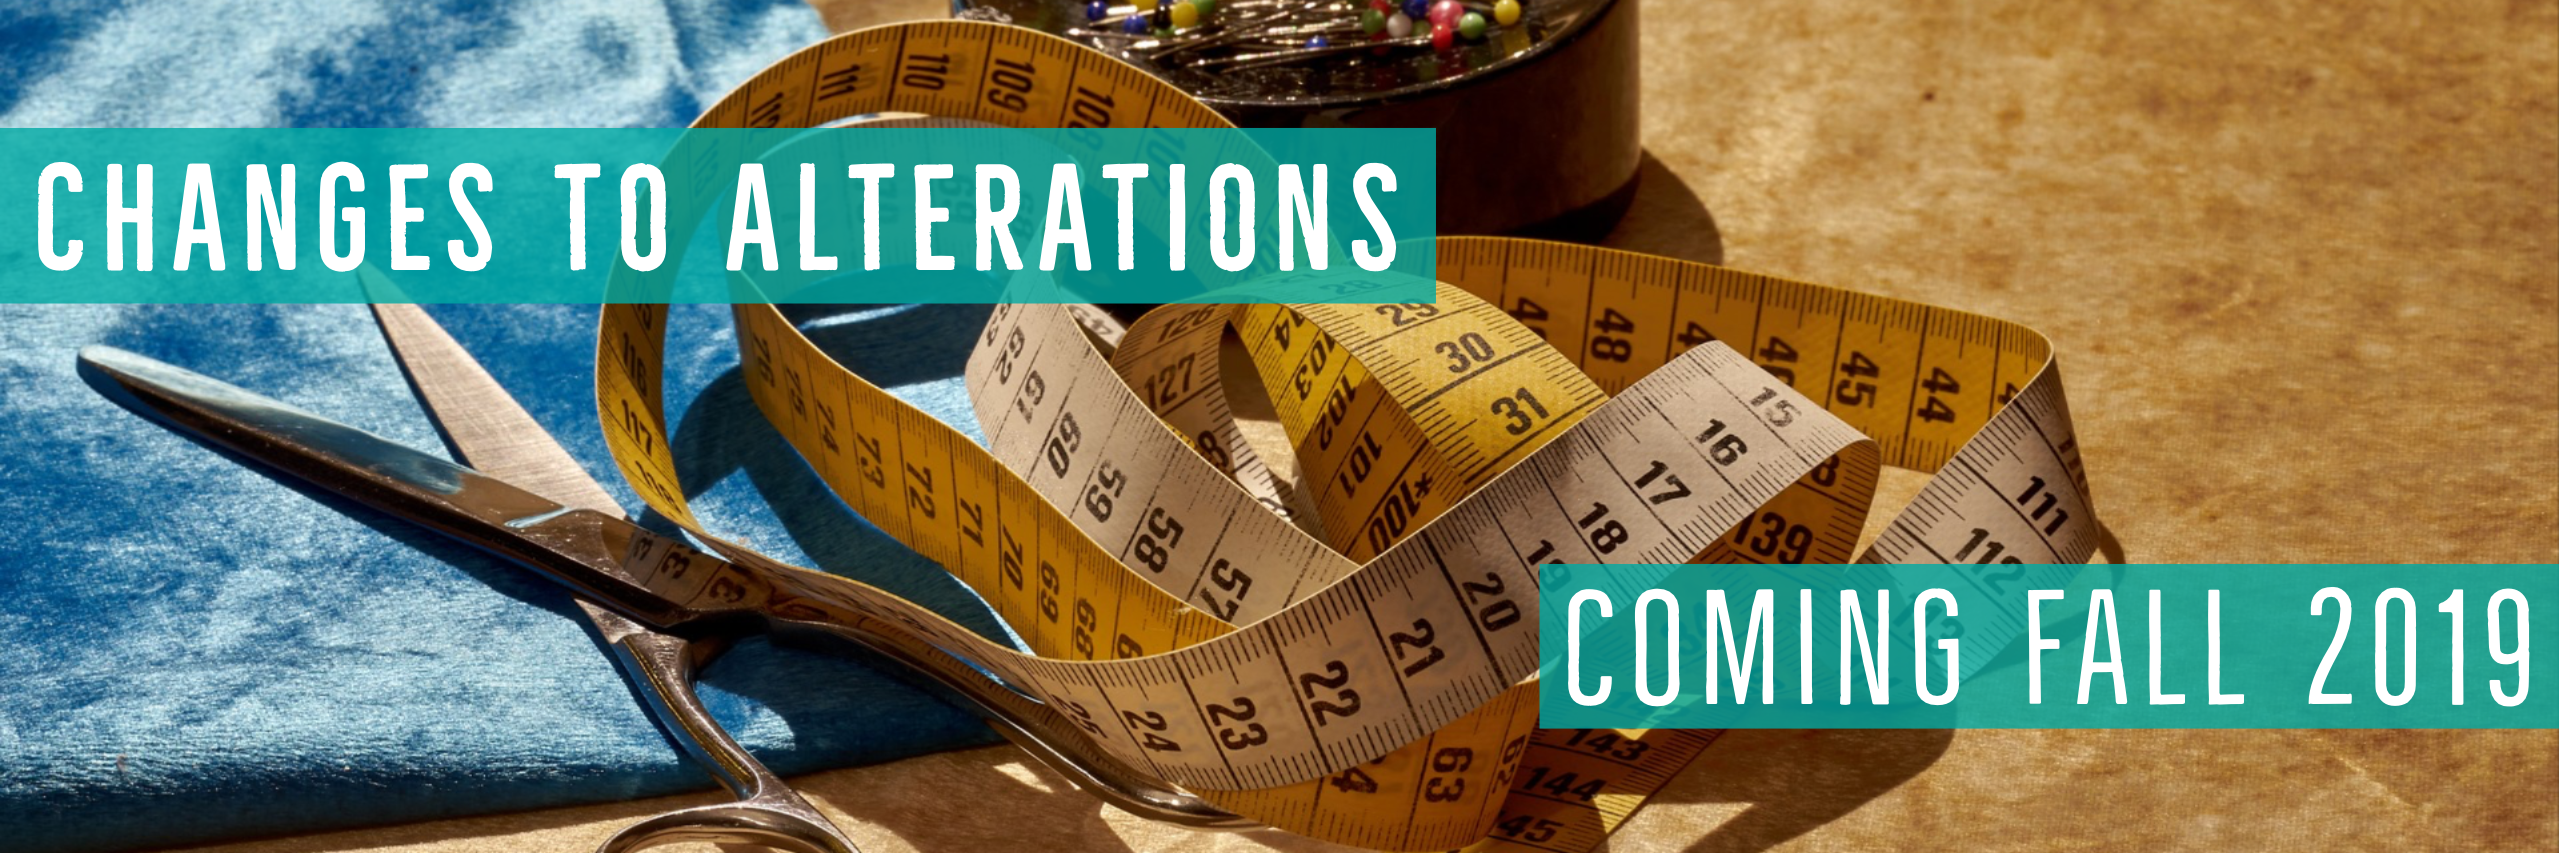 Changes to Alteration Services - Fall 2019 - Stacey Sansom Designs